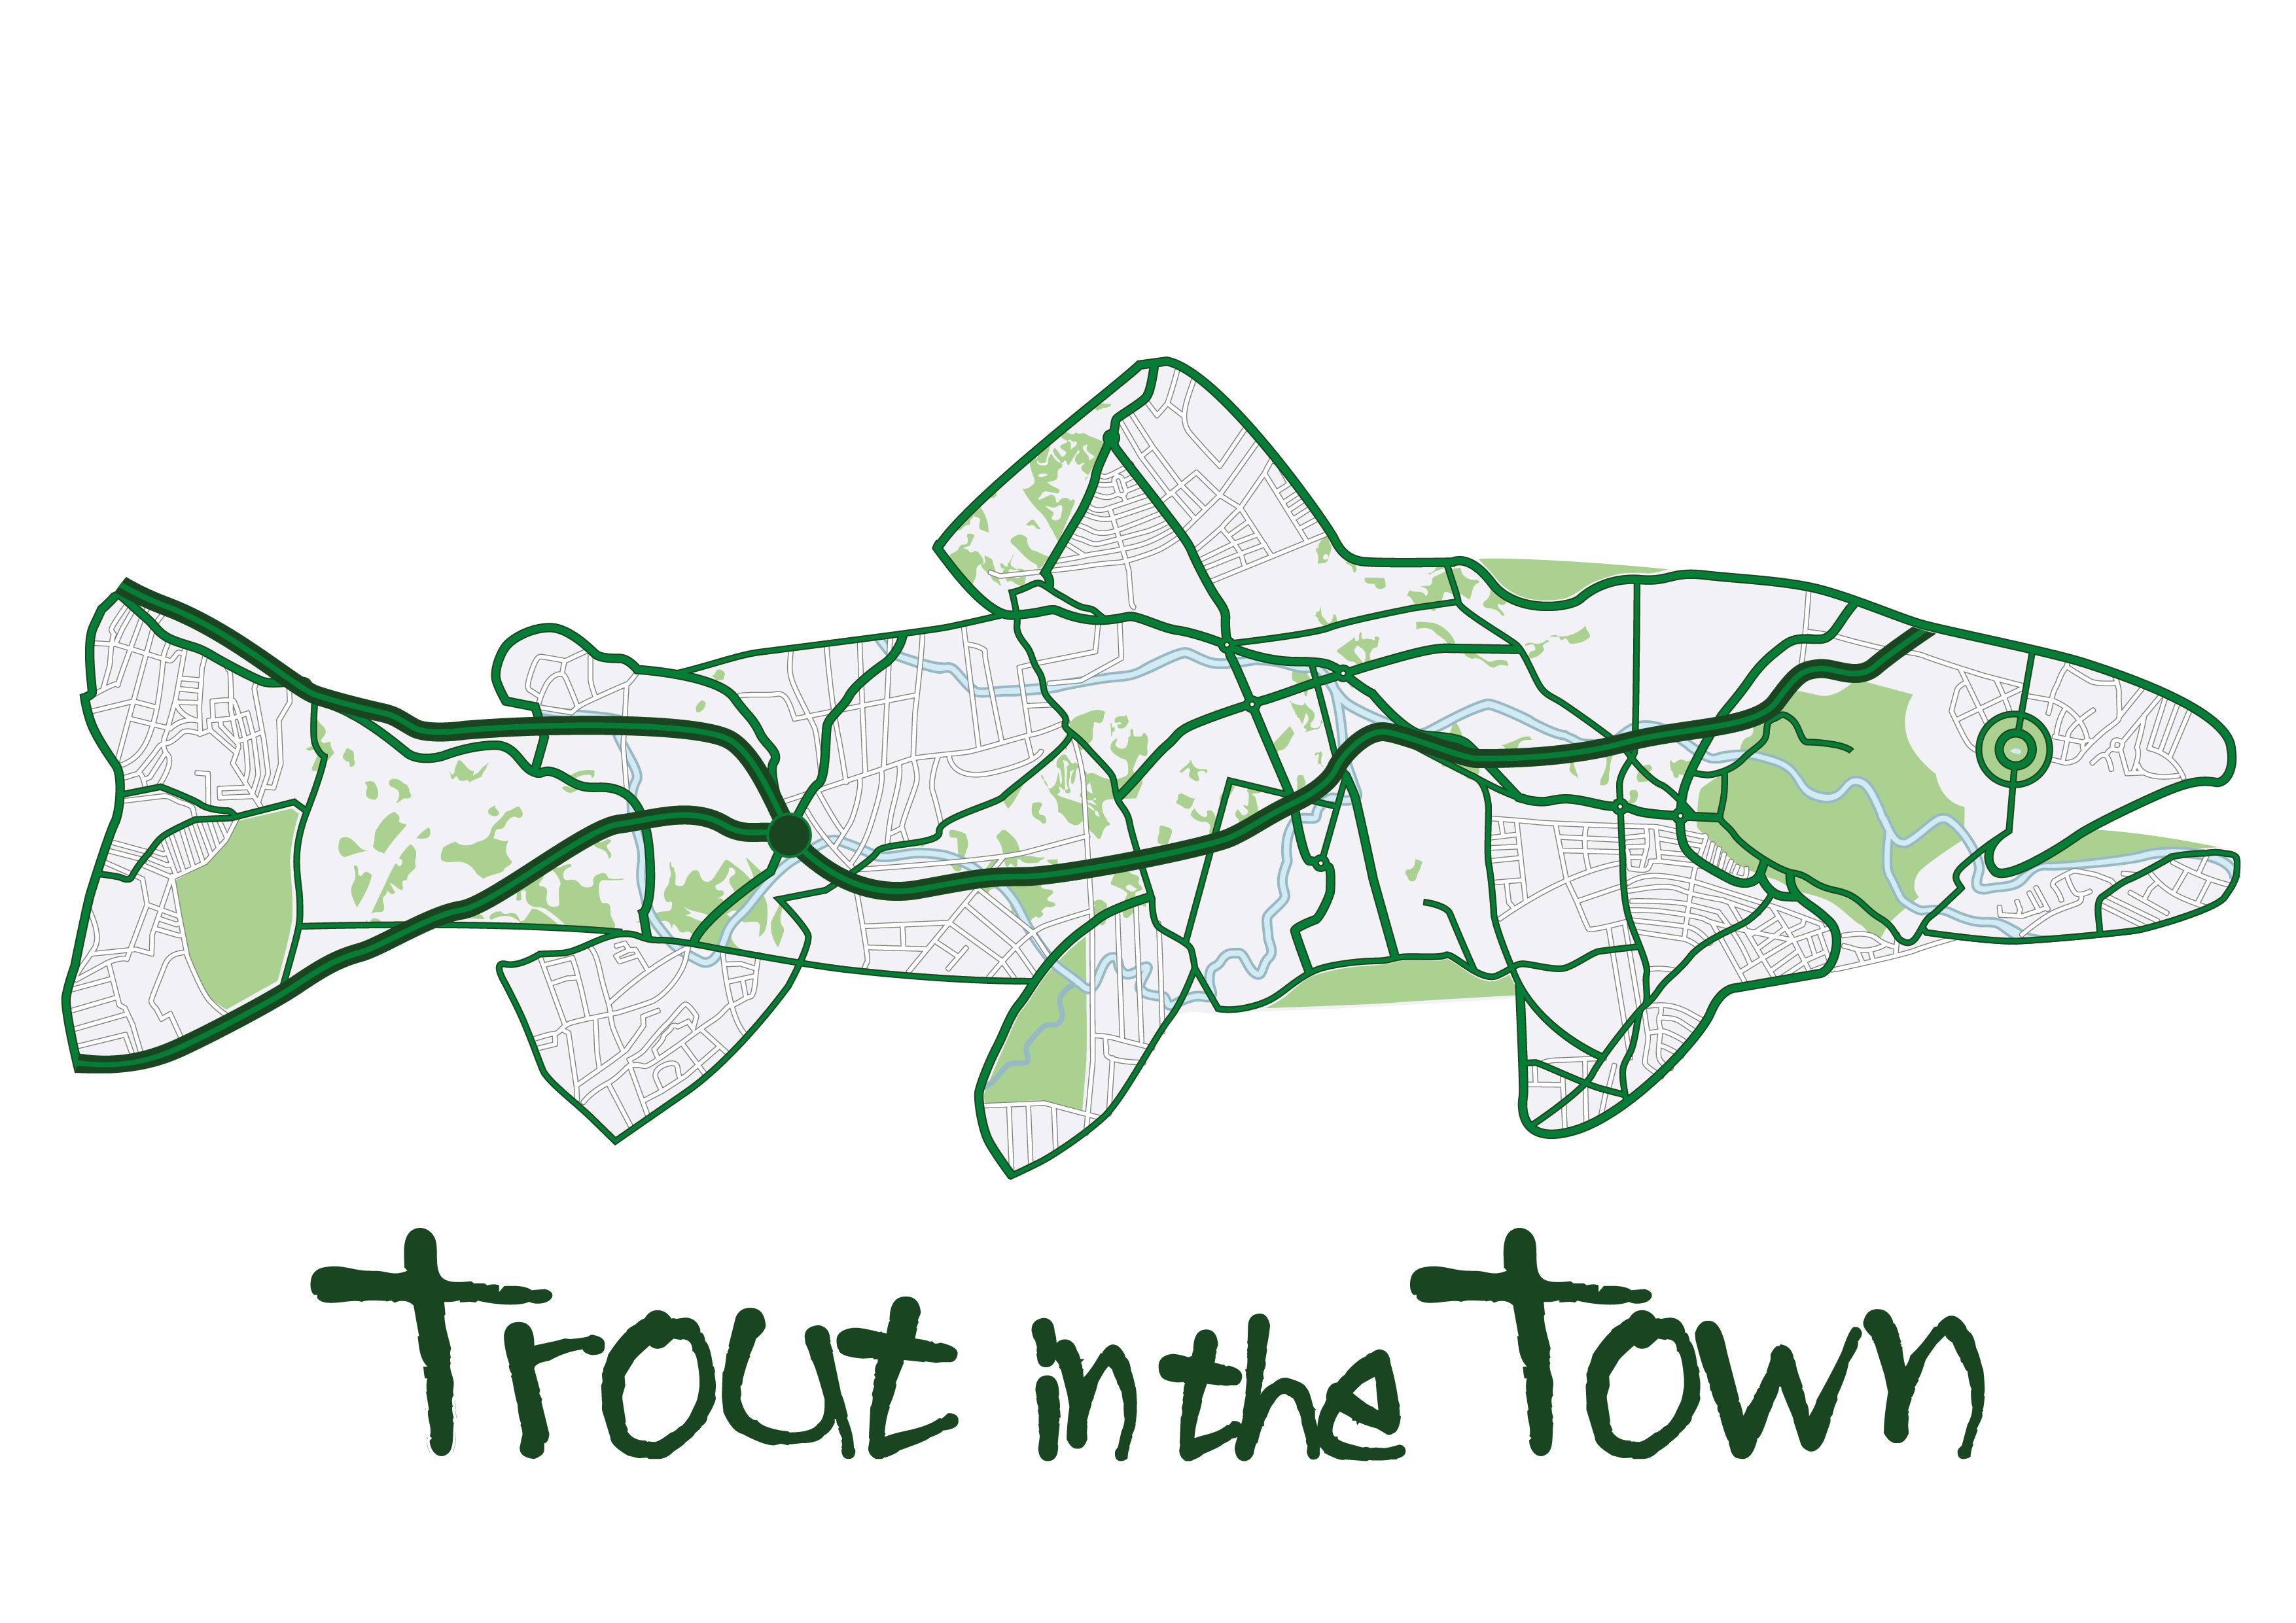 Trout in the Town: have you got your official accreditation yet?